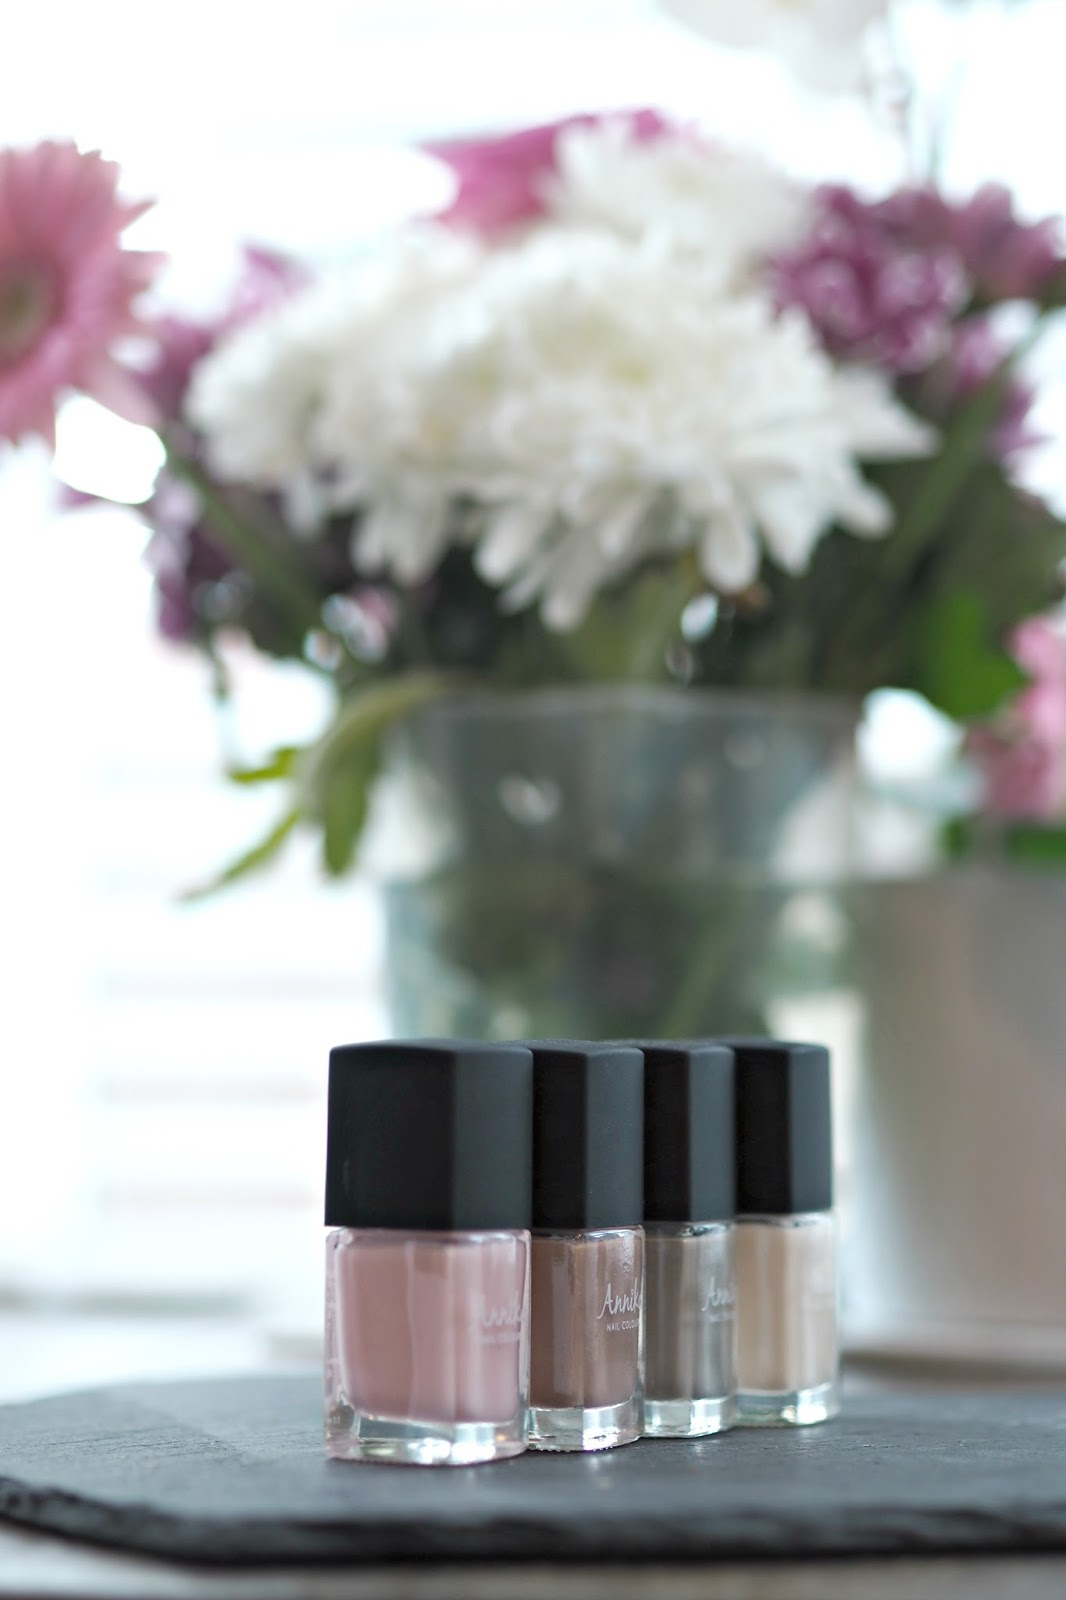 annika nail polish review by beauty blogger copper garden